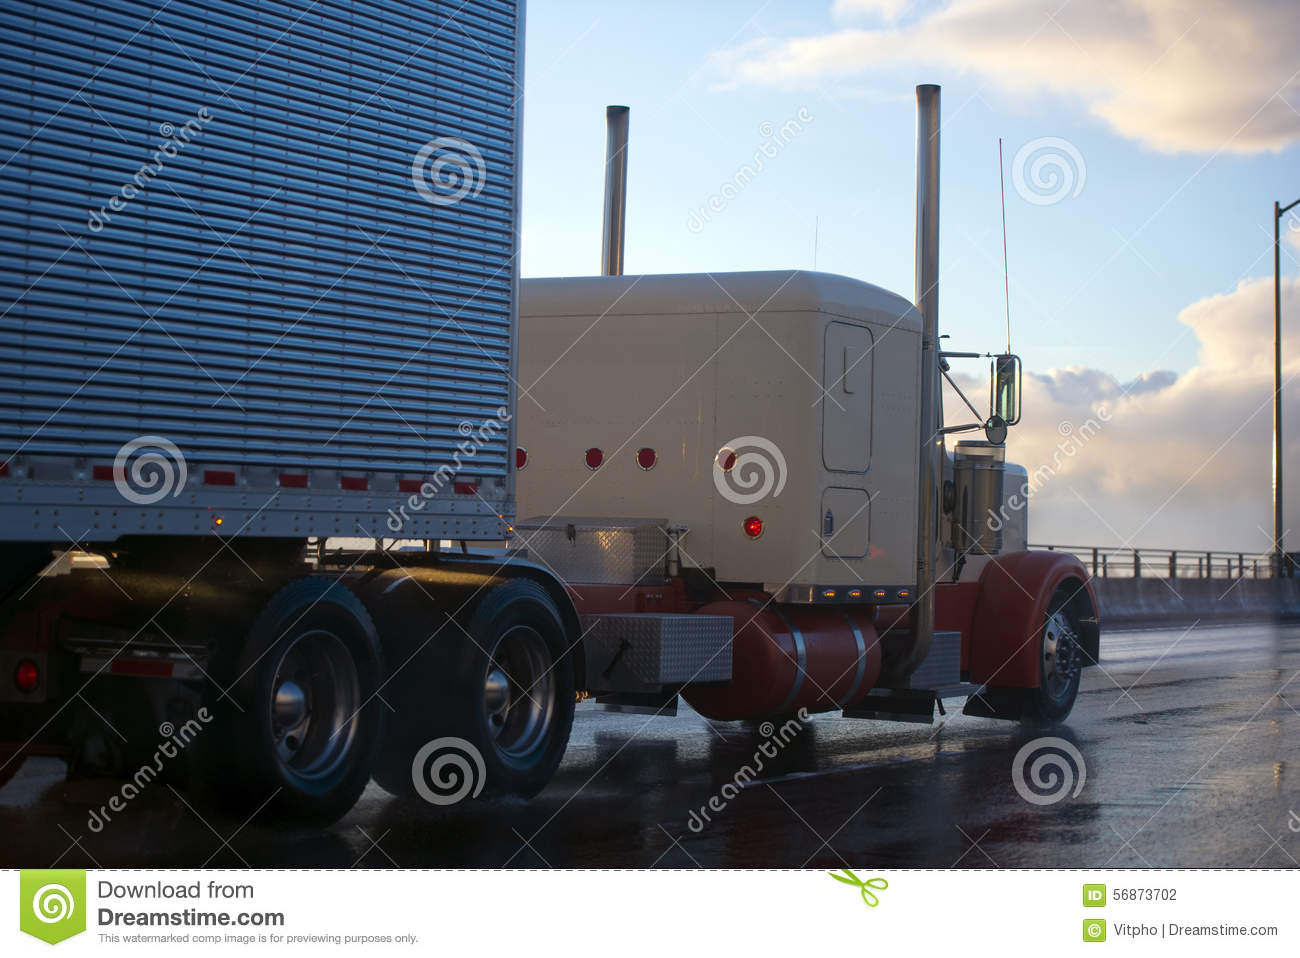 How to Own a Semi Truck Parts Store